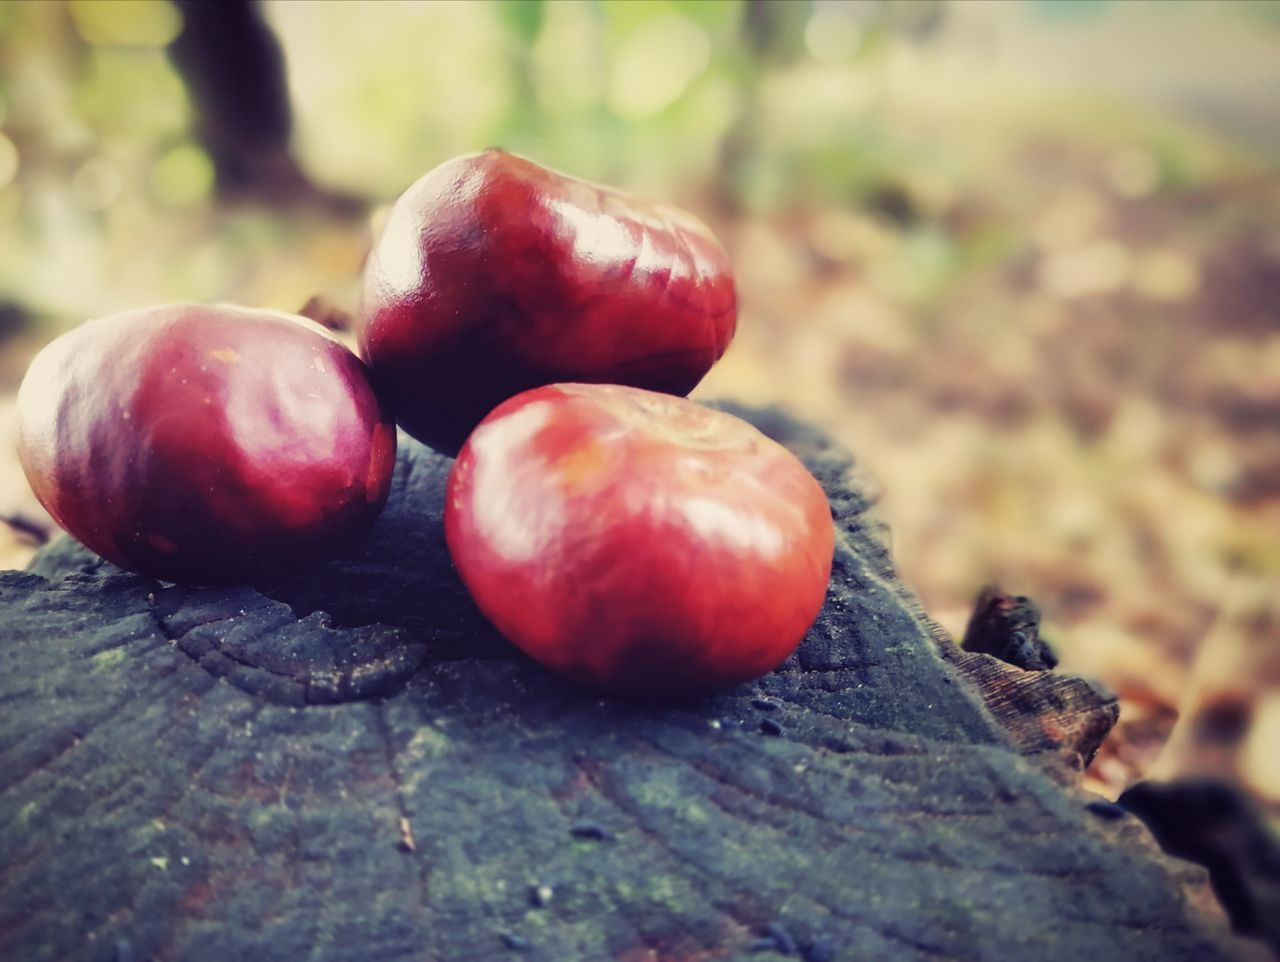 food and drink, food, healthy eating, fruit, wellbeing, close-up, freshness, day, selective focus, red, no people, focus on foreground, still life, nature, tree, wood - material, outdoors, table, ripe, berry fruit